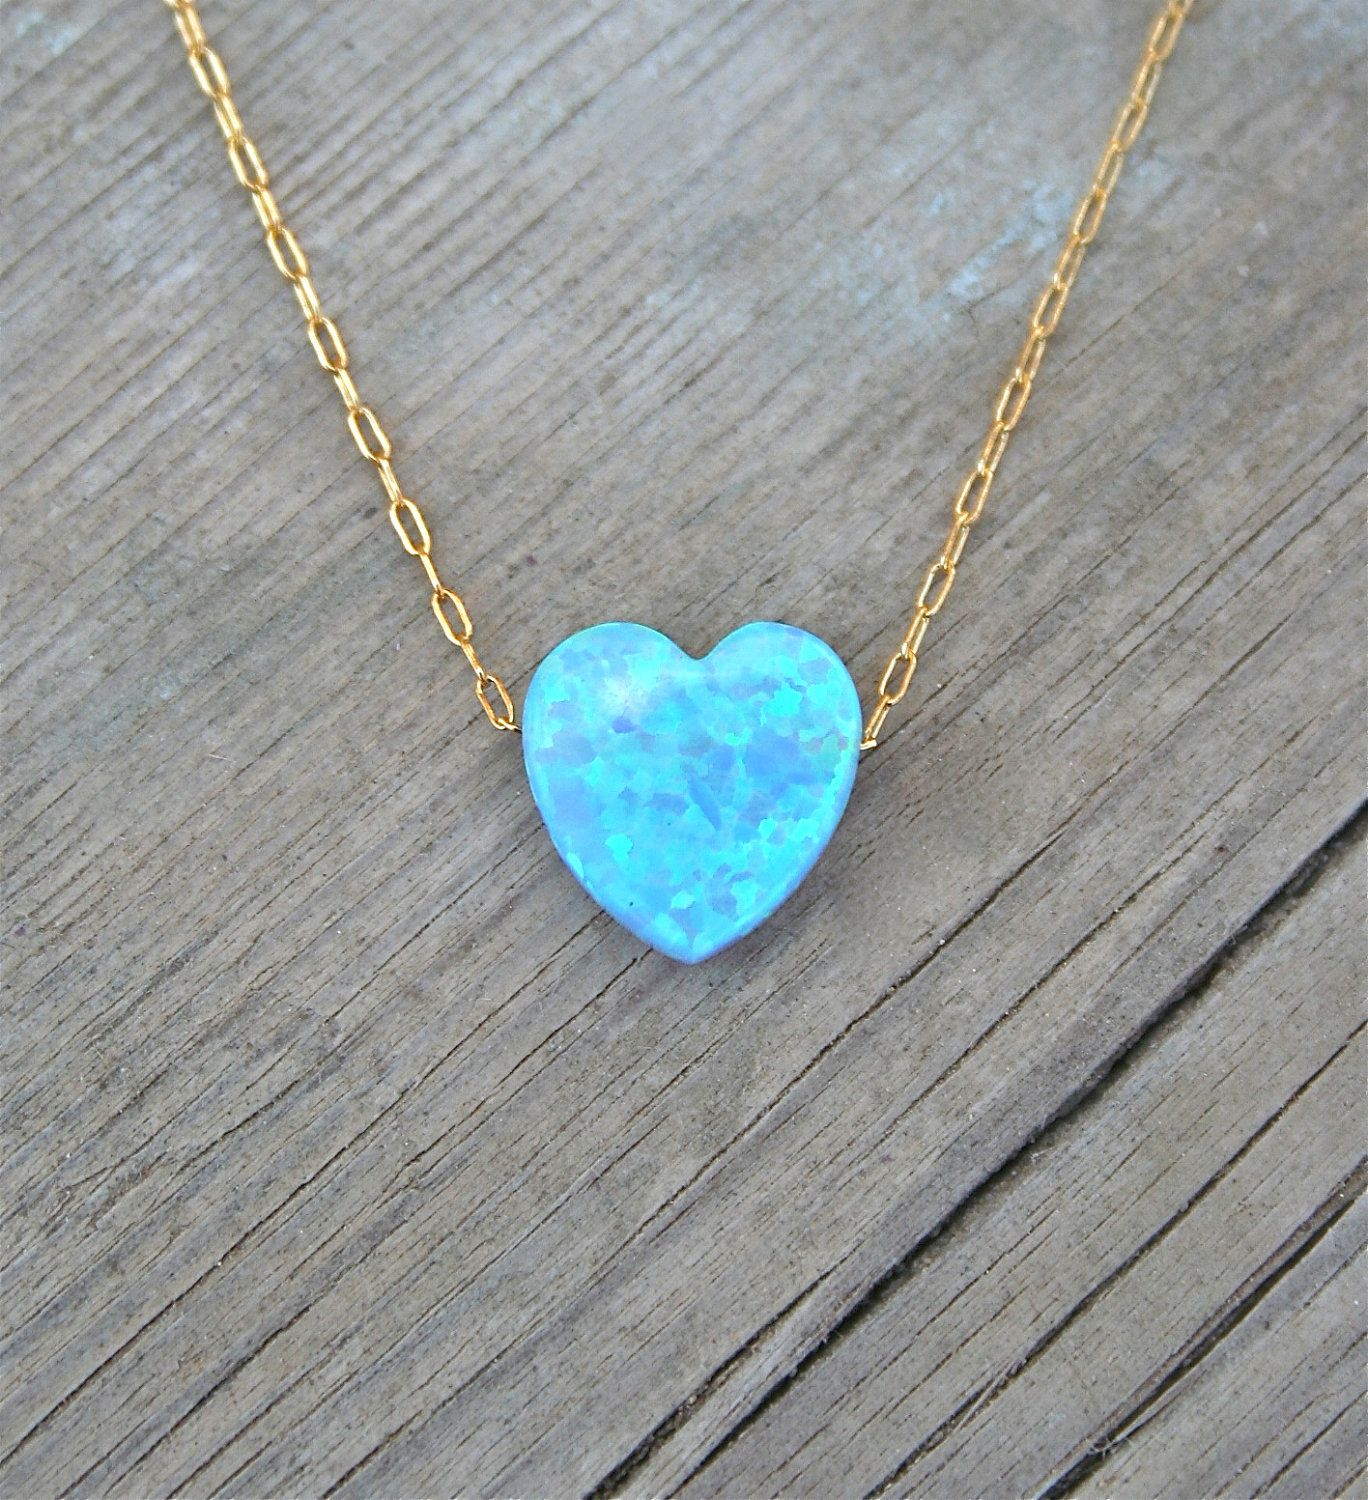 Heart necklace gold 14k gold filled chain blue heart necklace heart necklace gold 14k gold filled chain blue heart necklace opal jewelry designer necklace heart necklace womens jewelry necklace aloadofball Gallery